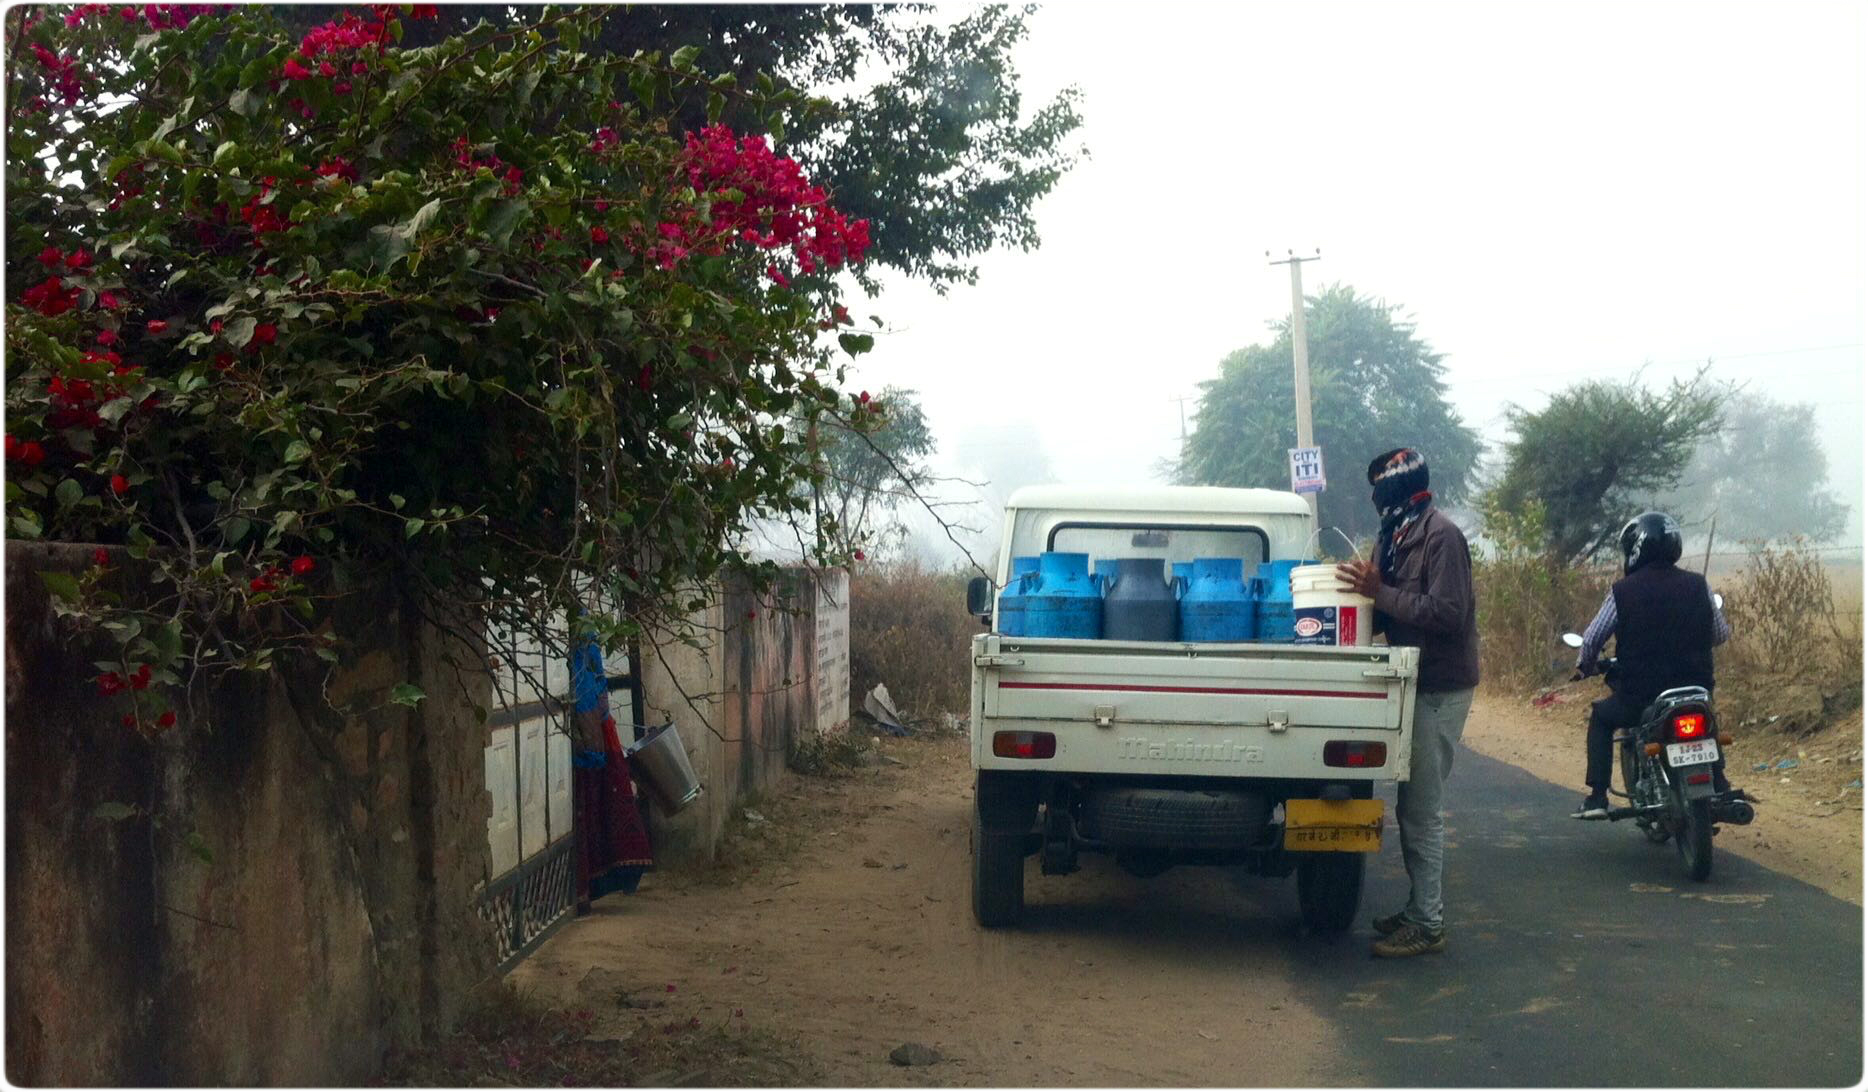 Ok, one last one- notice the woman to the left waiting for the milkman, to fill her bucket with milk